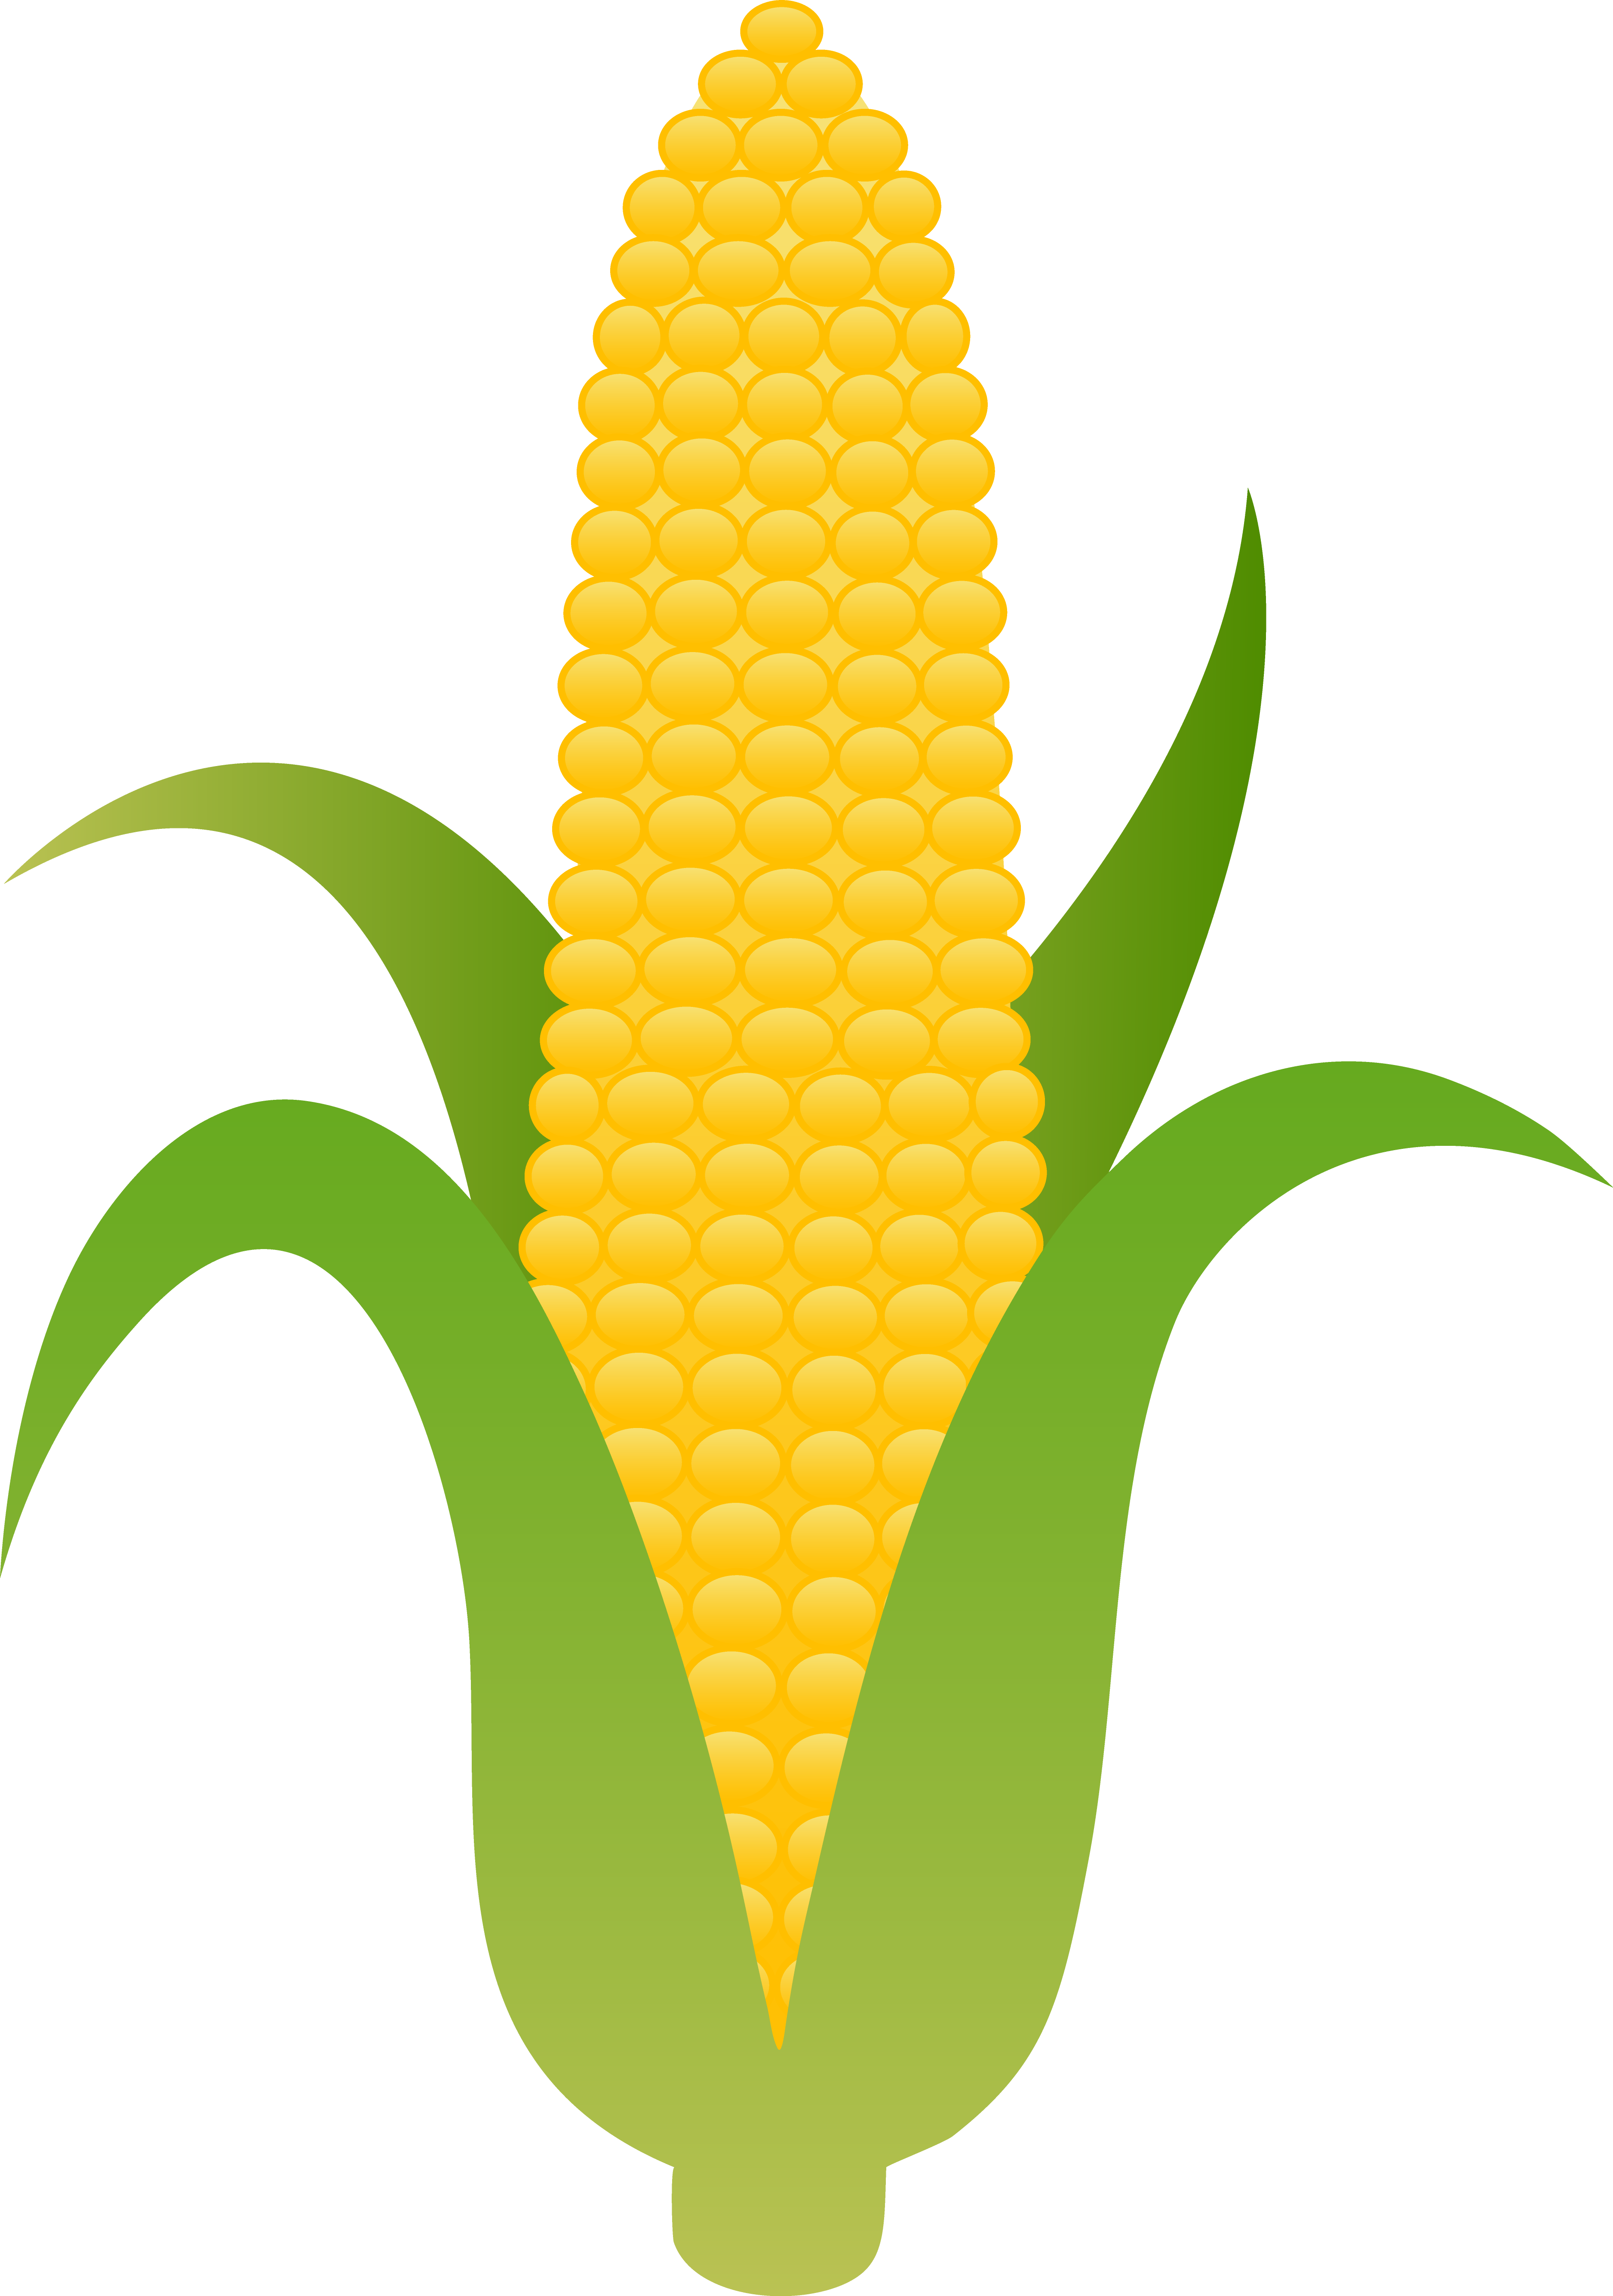 3751x5338 Wallpaper And Desktop For Pc Ear Of Yellow Corn Free Clip Art